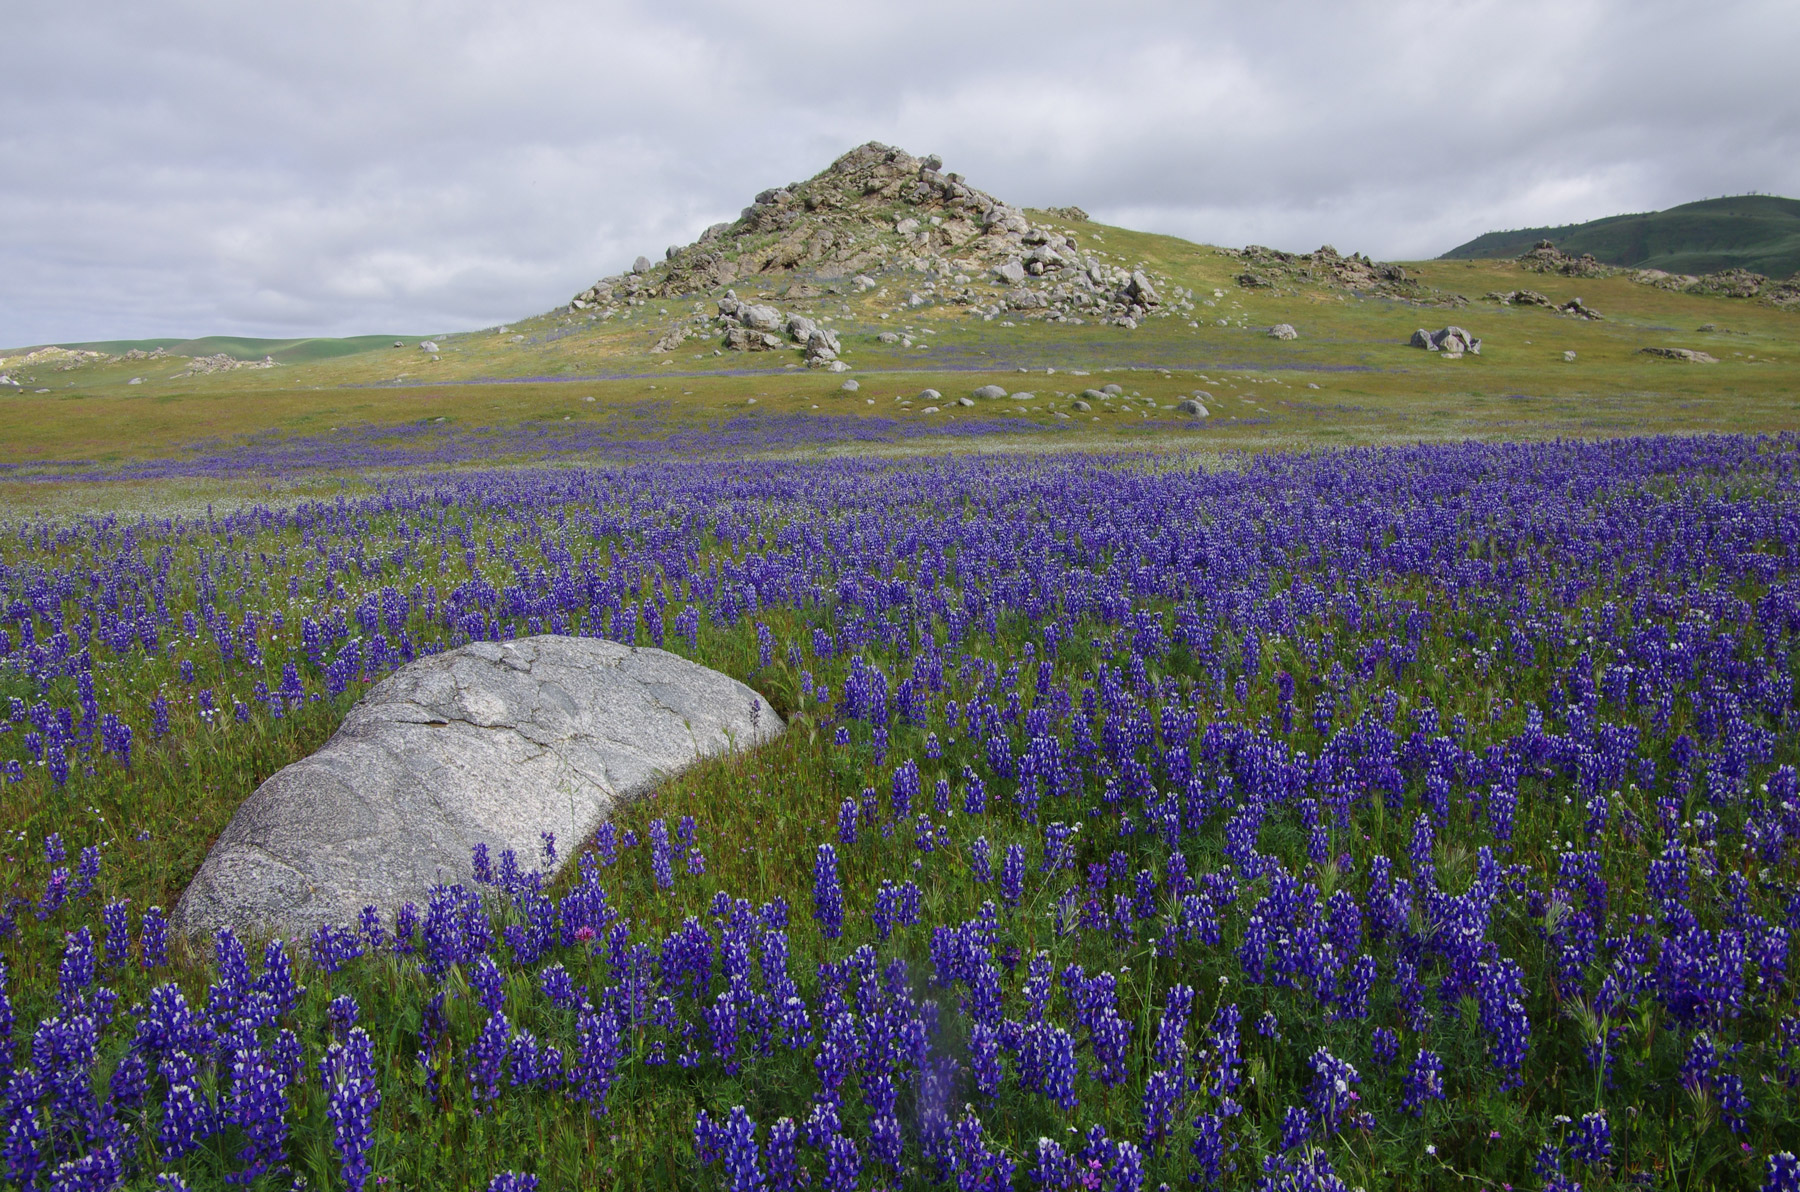 A dense field of Lupinus nanus (sky lupine) adjacent to the lower slopes of the Tejon Hills. Credit Nick Jensen.